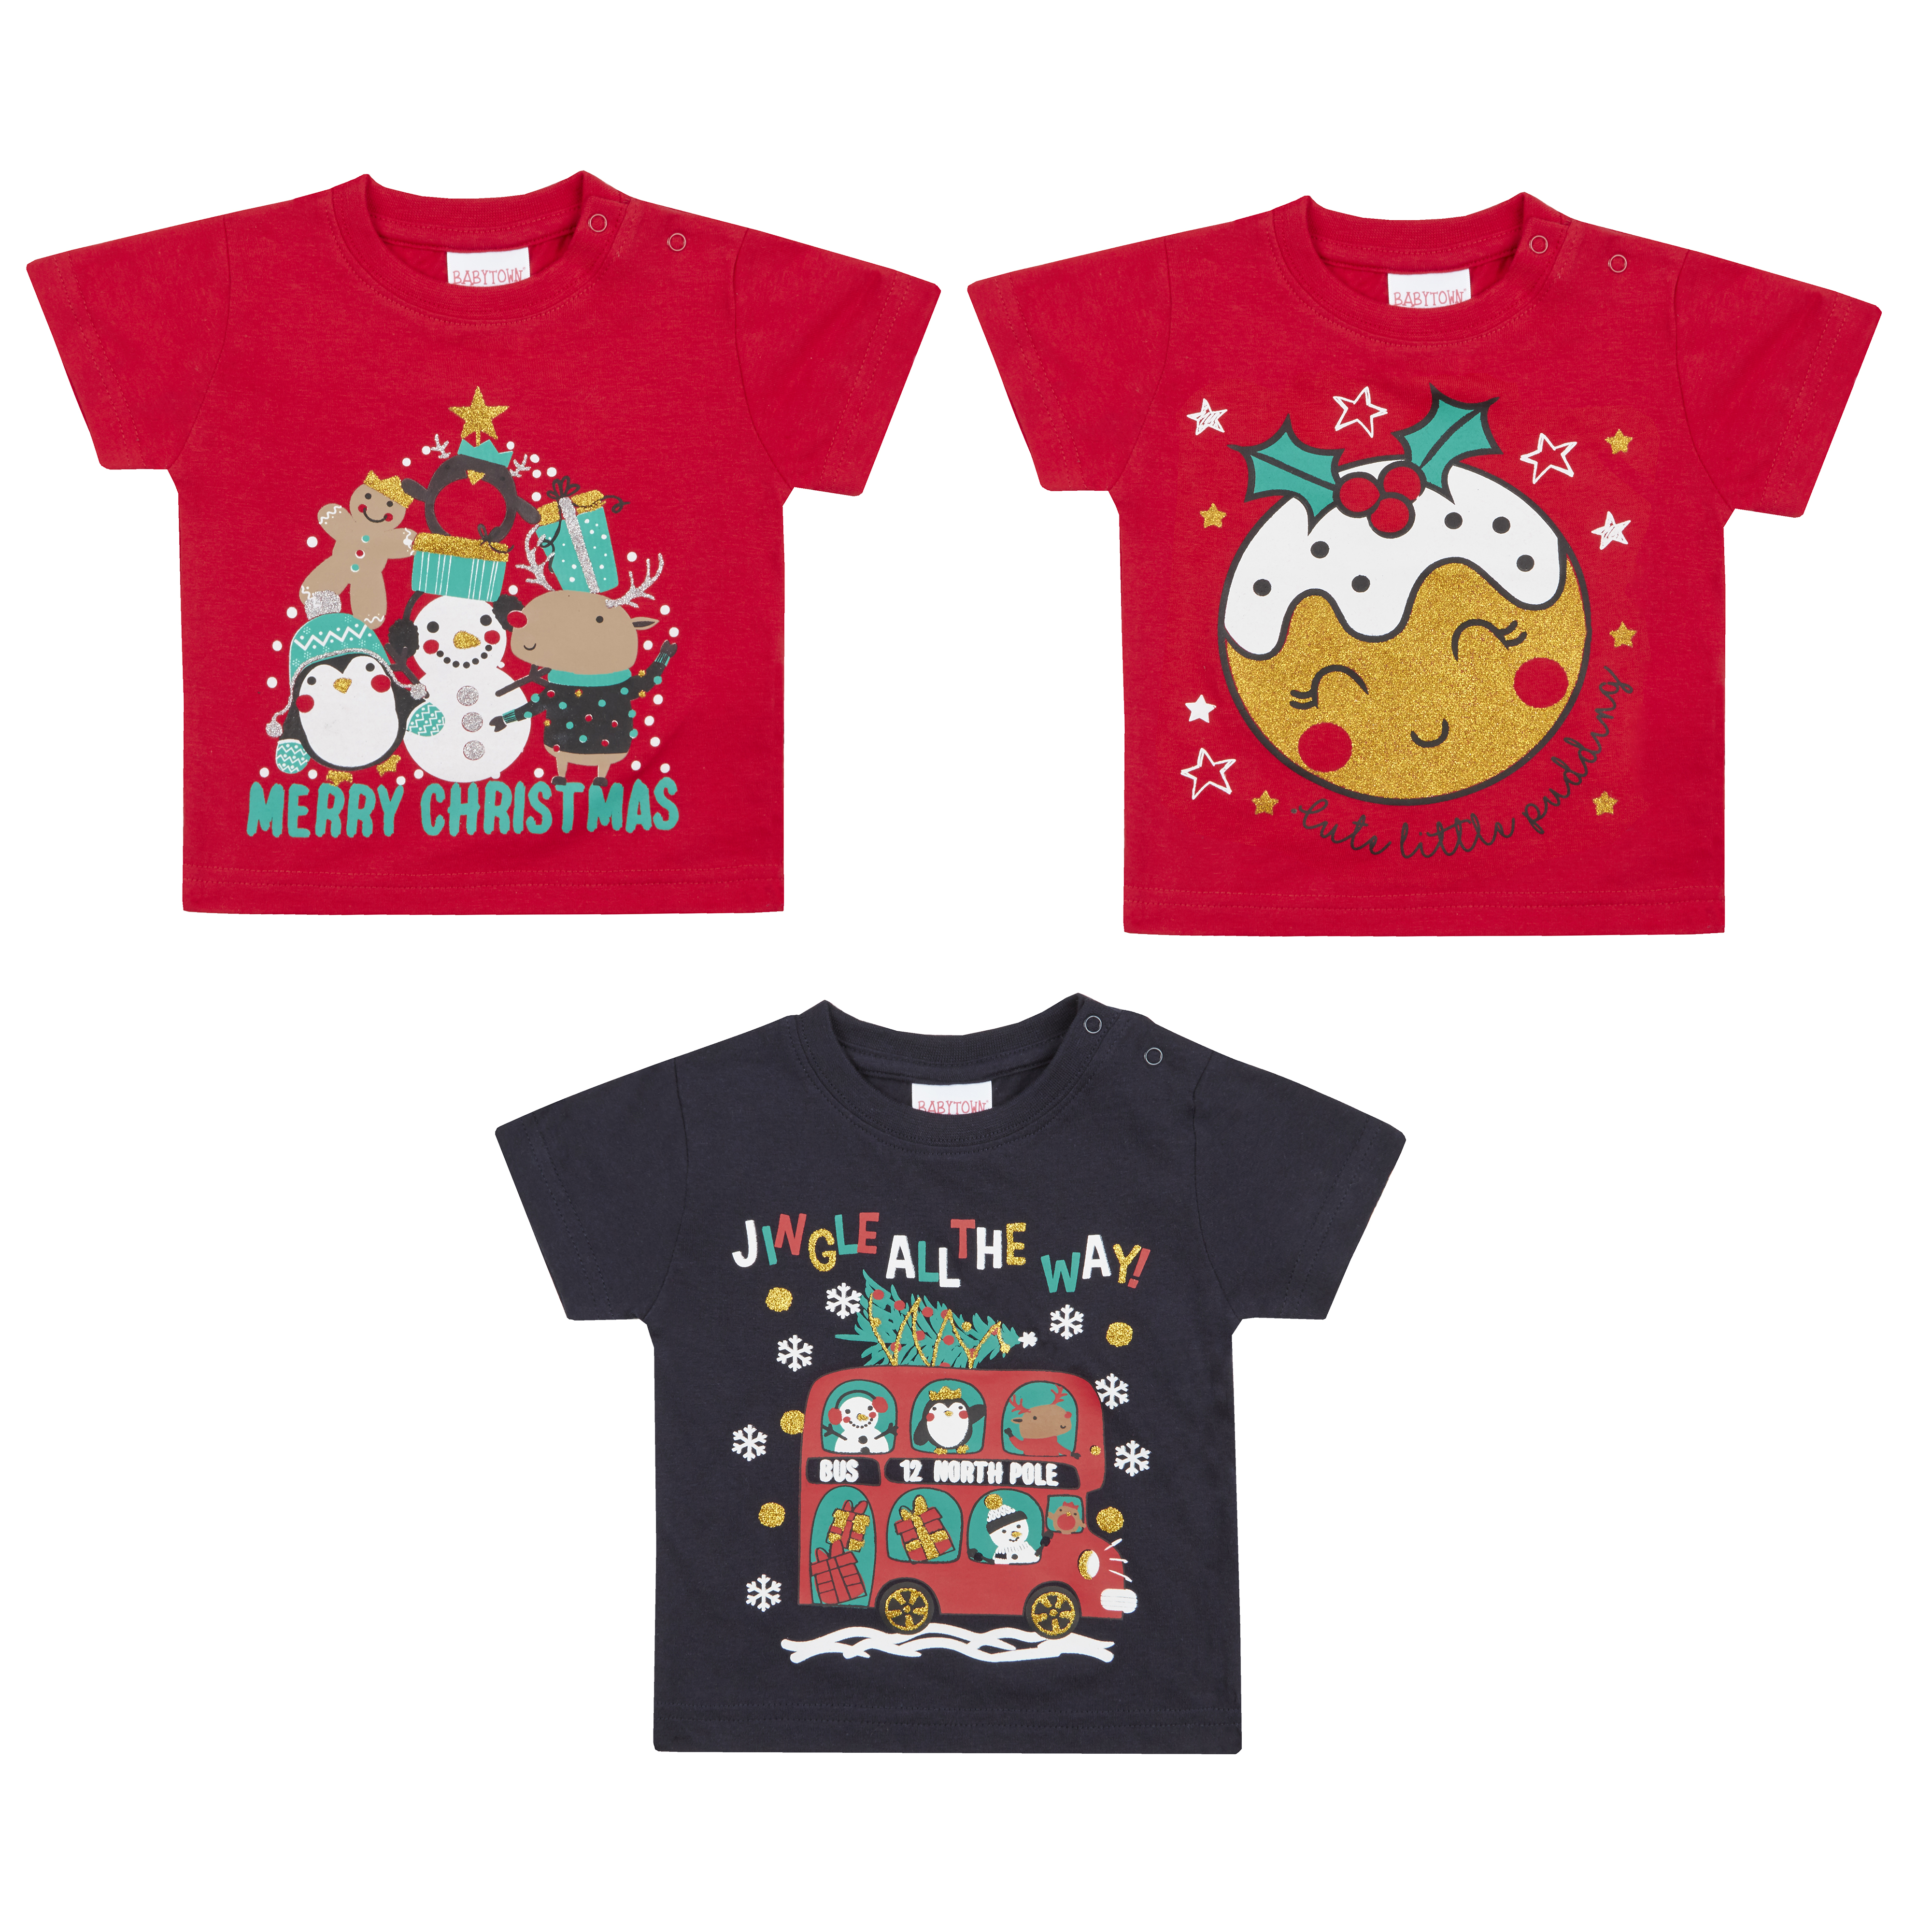 24945d514 Unisex Baby Christmas Xmas T-shirt Top Tee 100% Cotton Festive ...